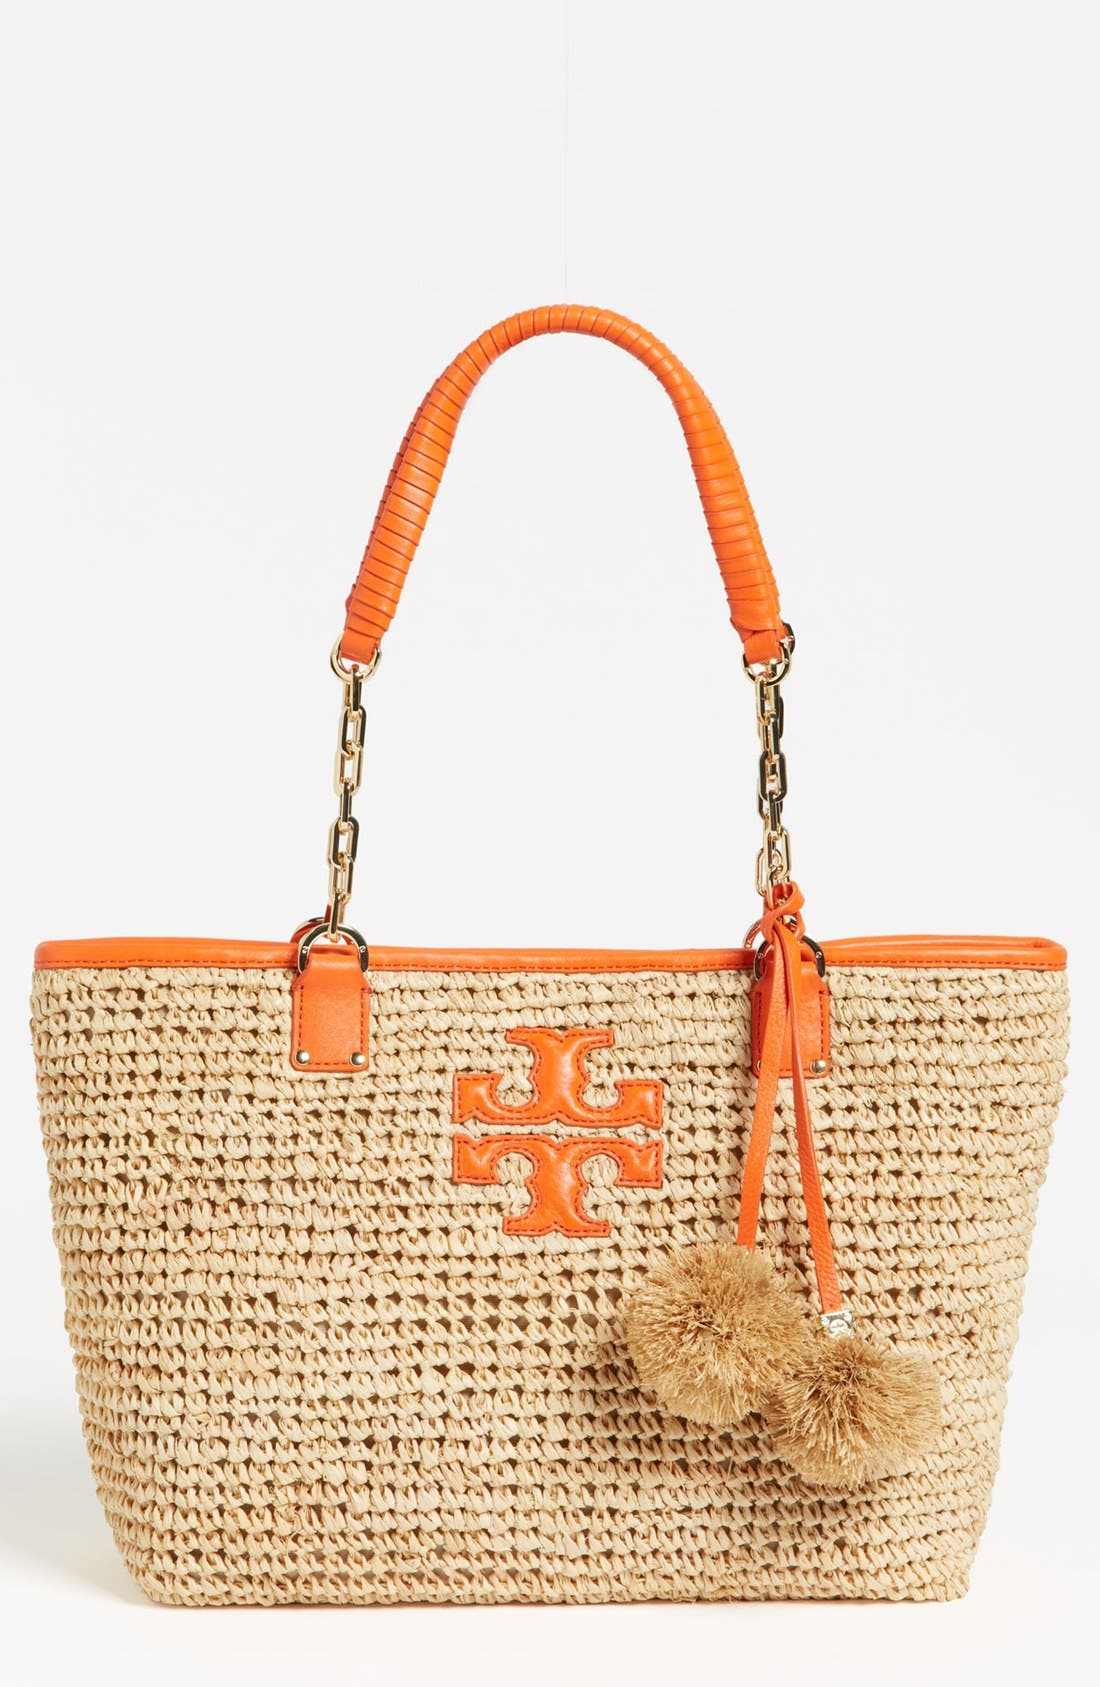 Alternate Image 1 Selected - Tory Burch 'Thea - Small' Straw Tote